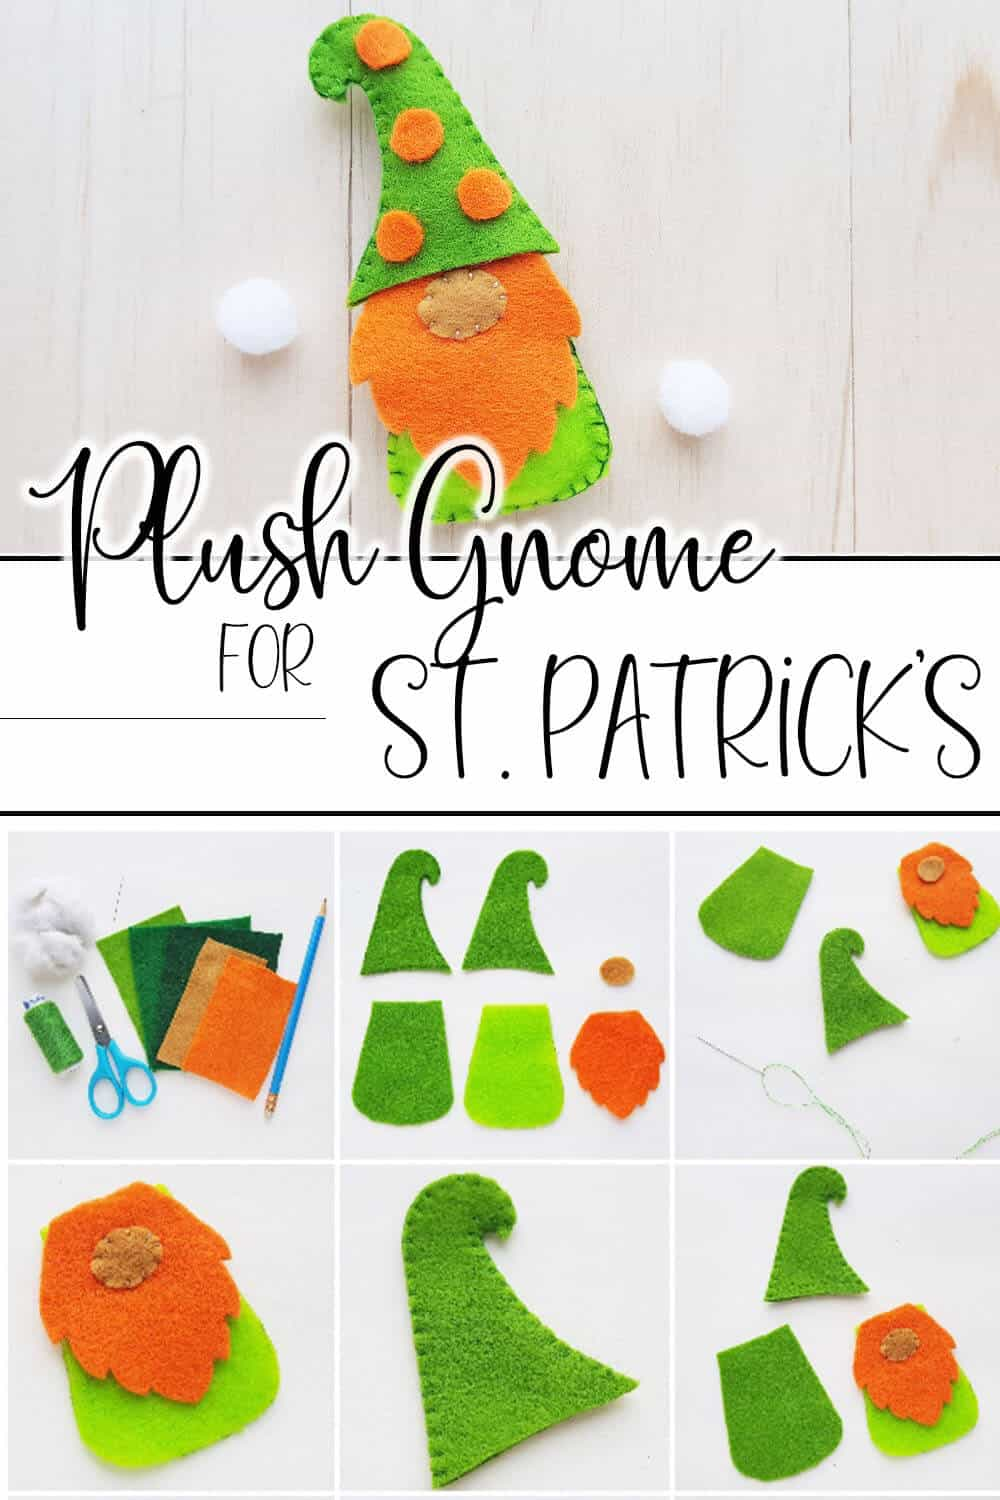 photo collage of how to make a plush gnome for St Patricks Day with text which reads plush gnome for St Patricks Day